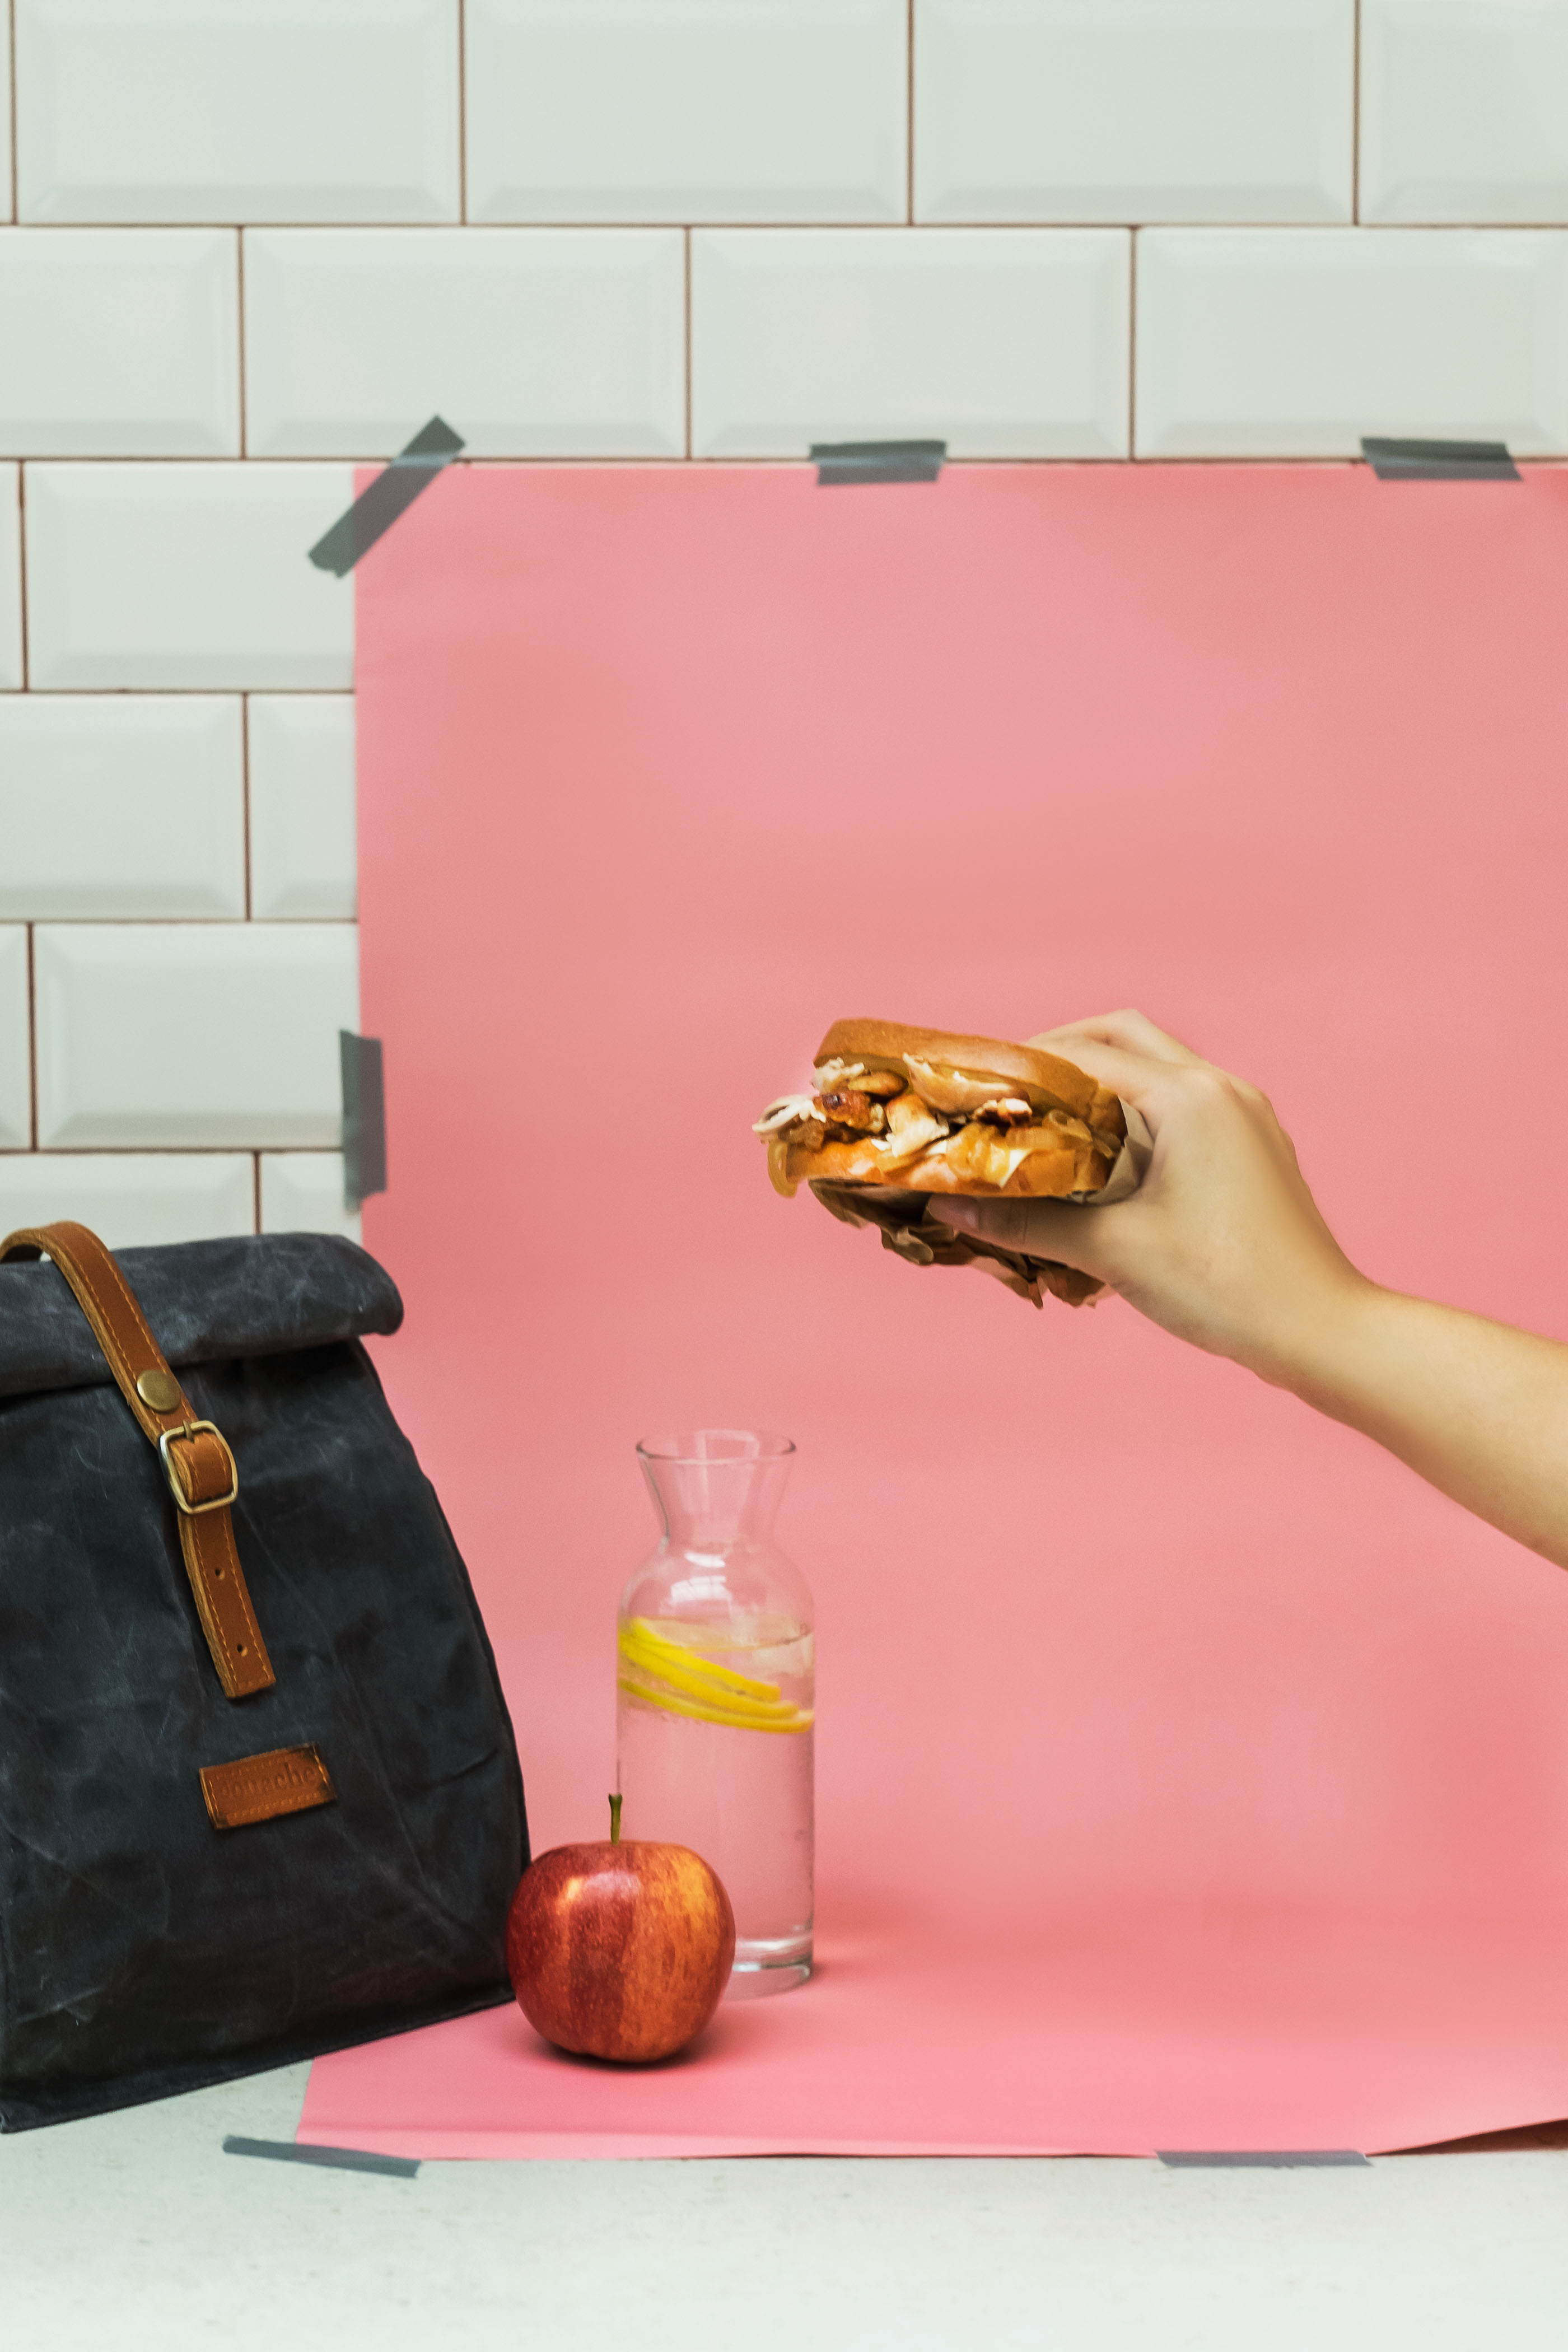 eats food trends packed lunch